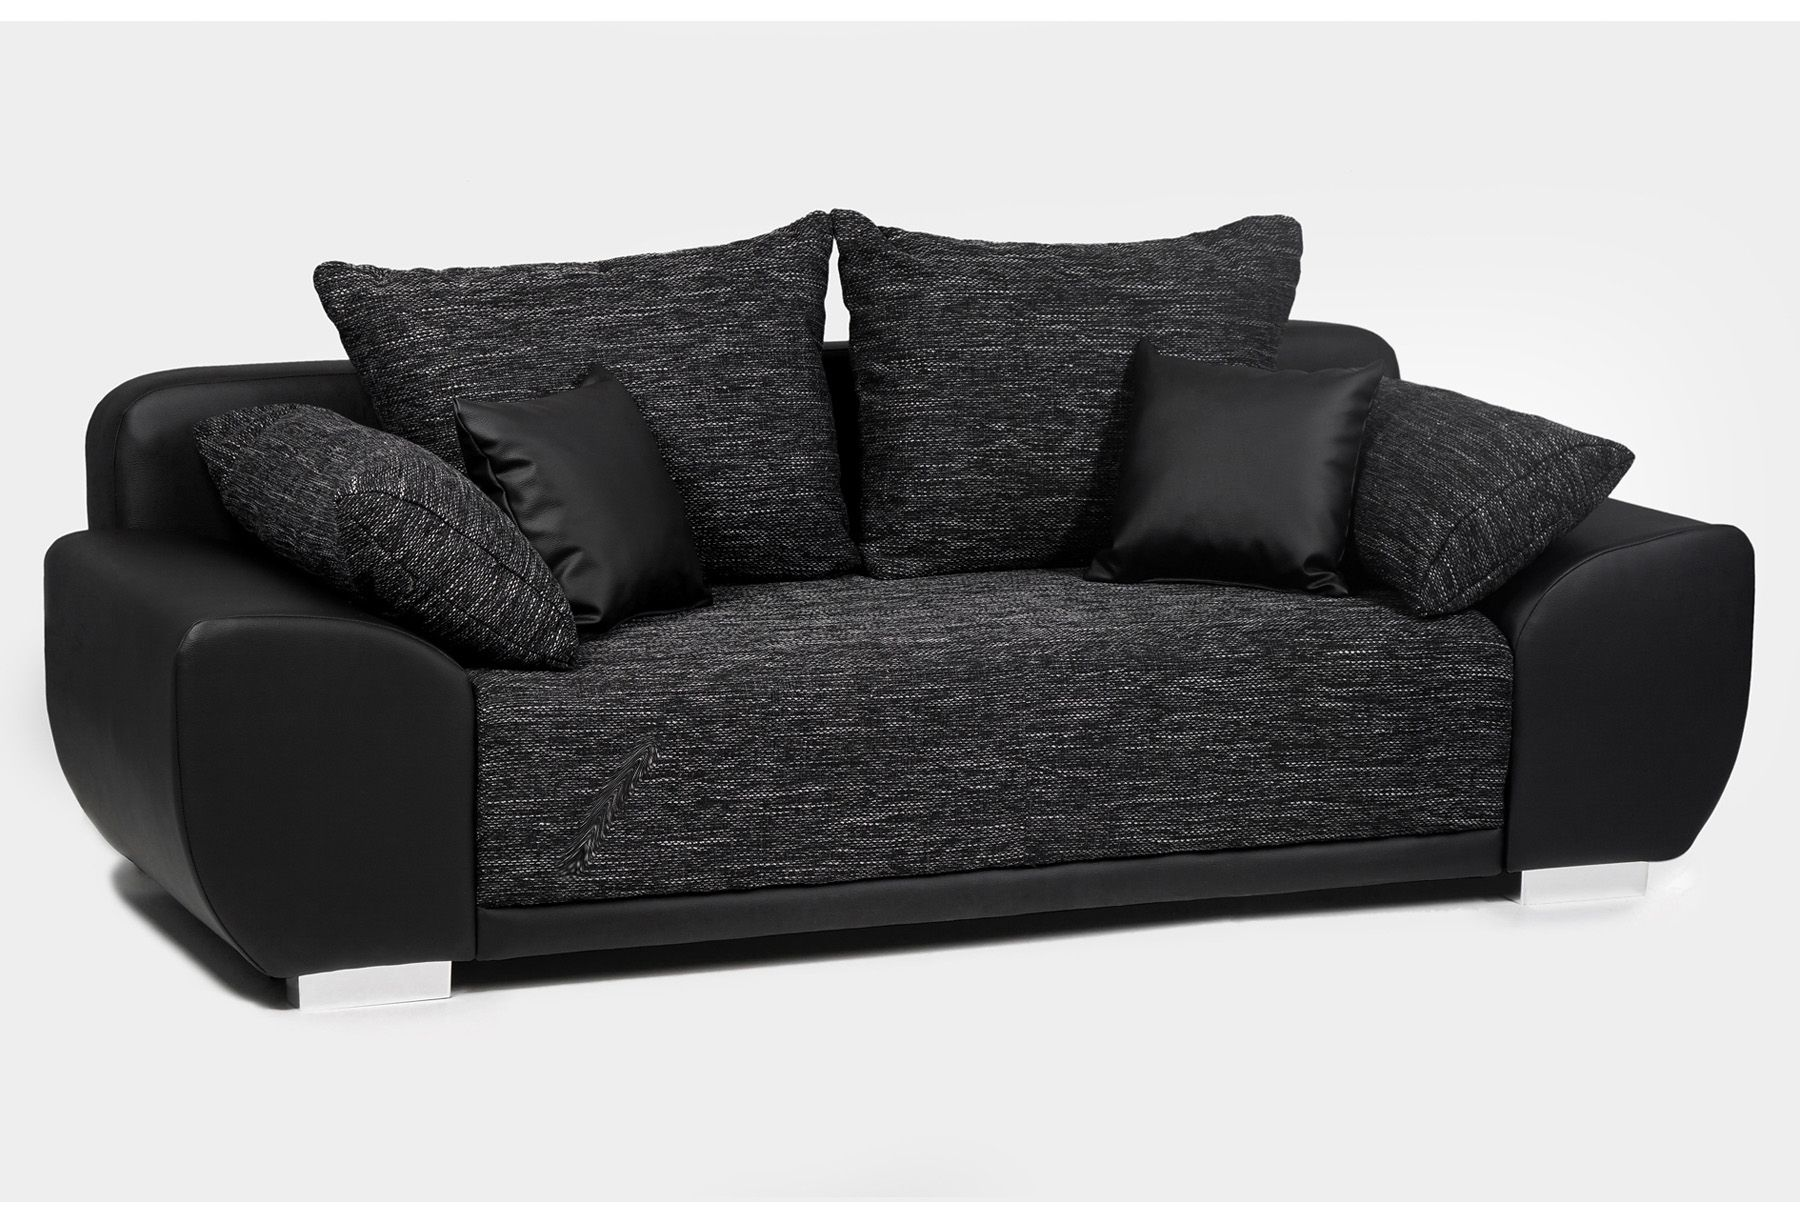 schlafsofa mit federkern schwab versand schlafsofas. Black Bedroom Furniture Sets. Home Design Ideas